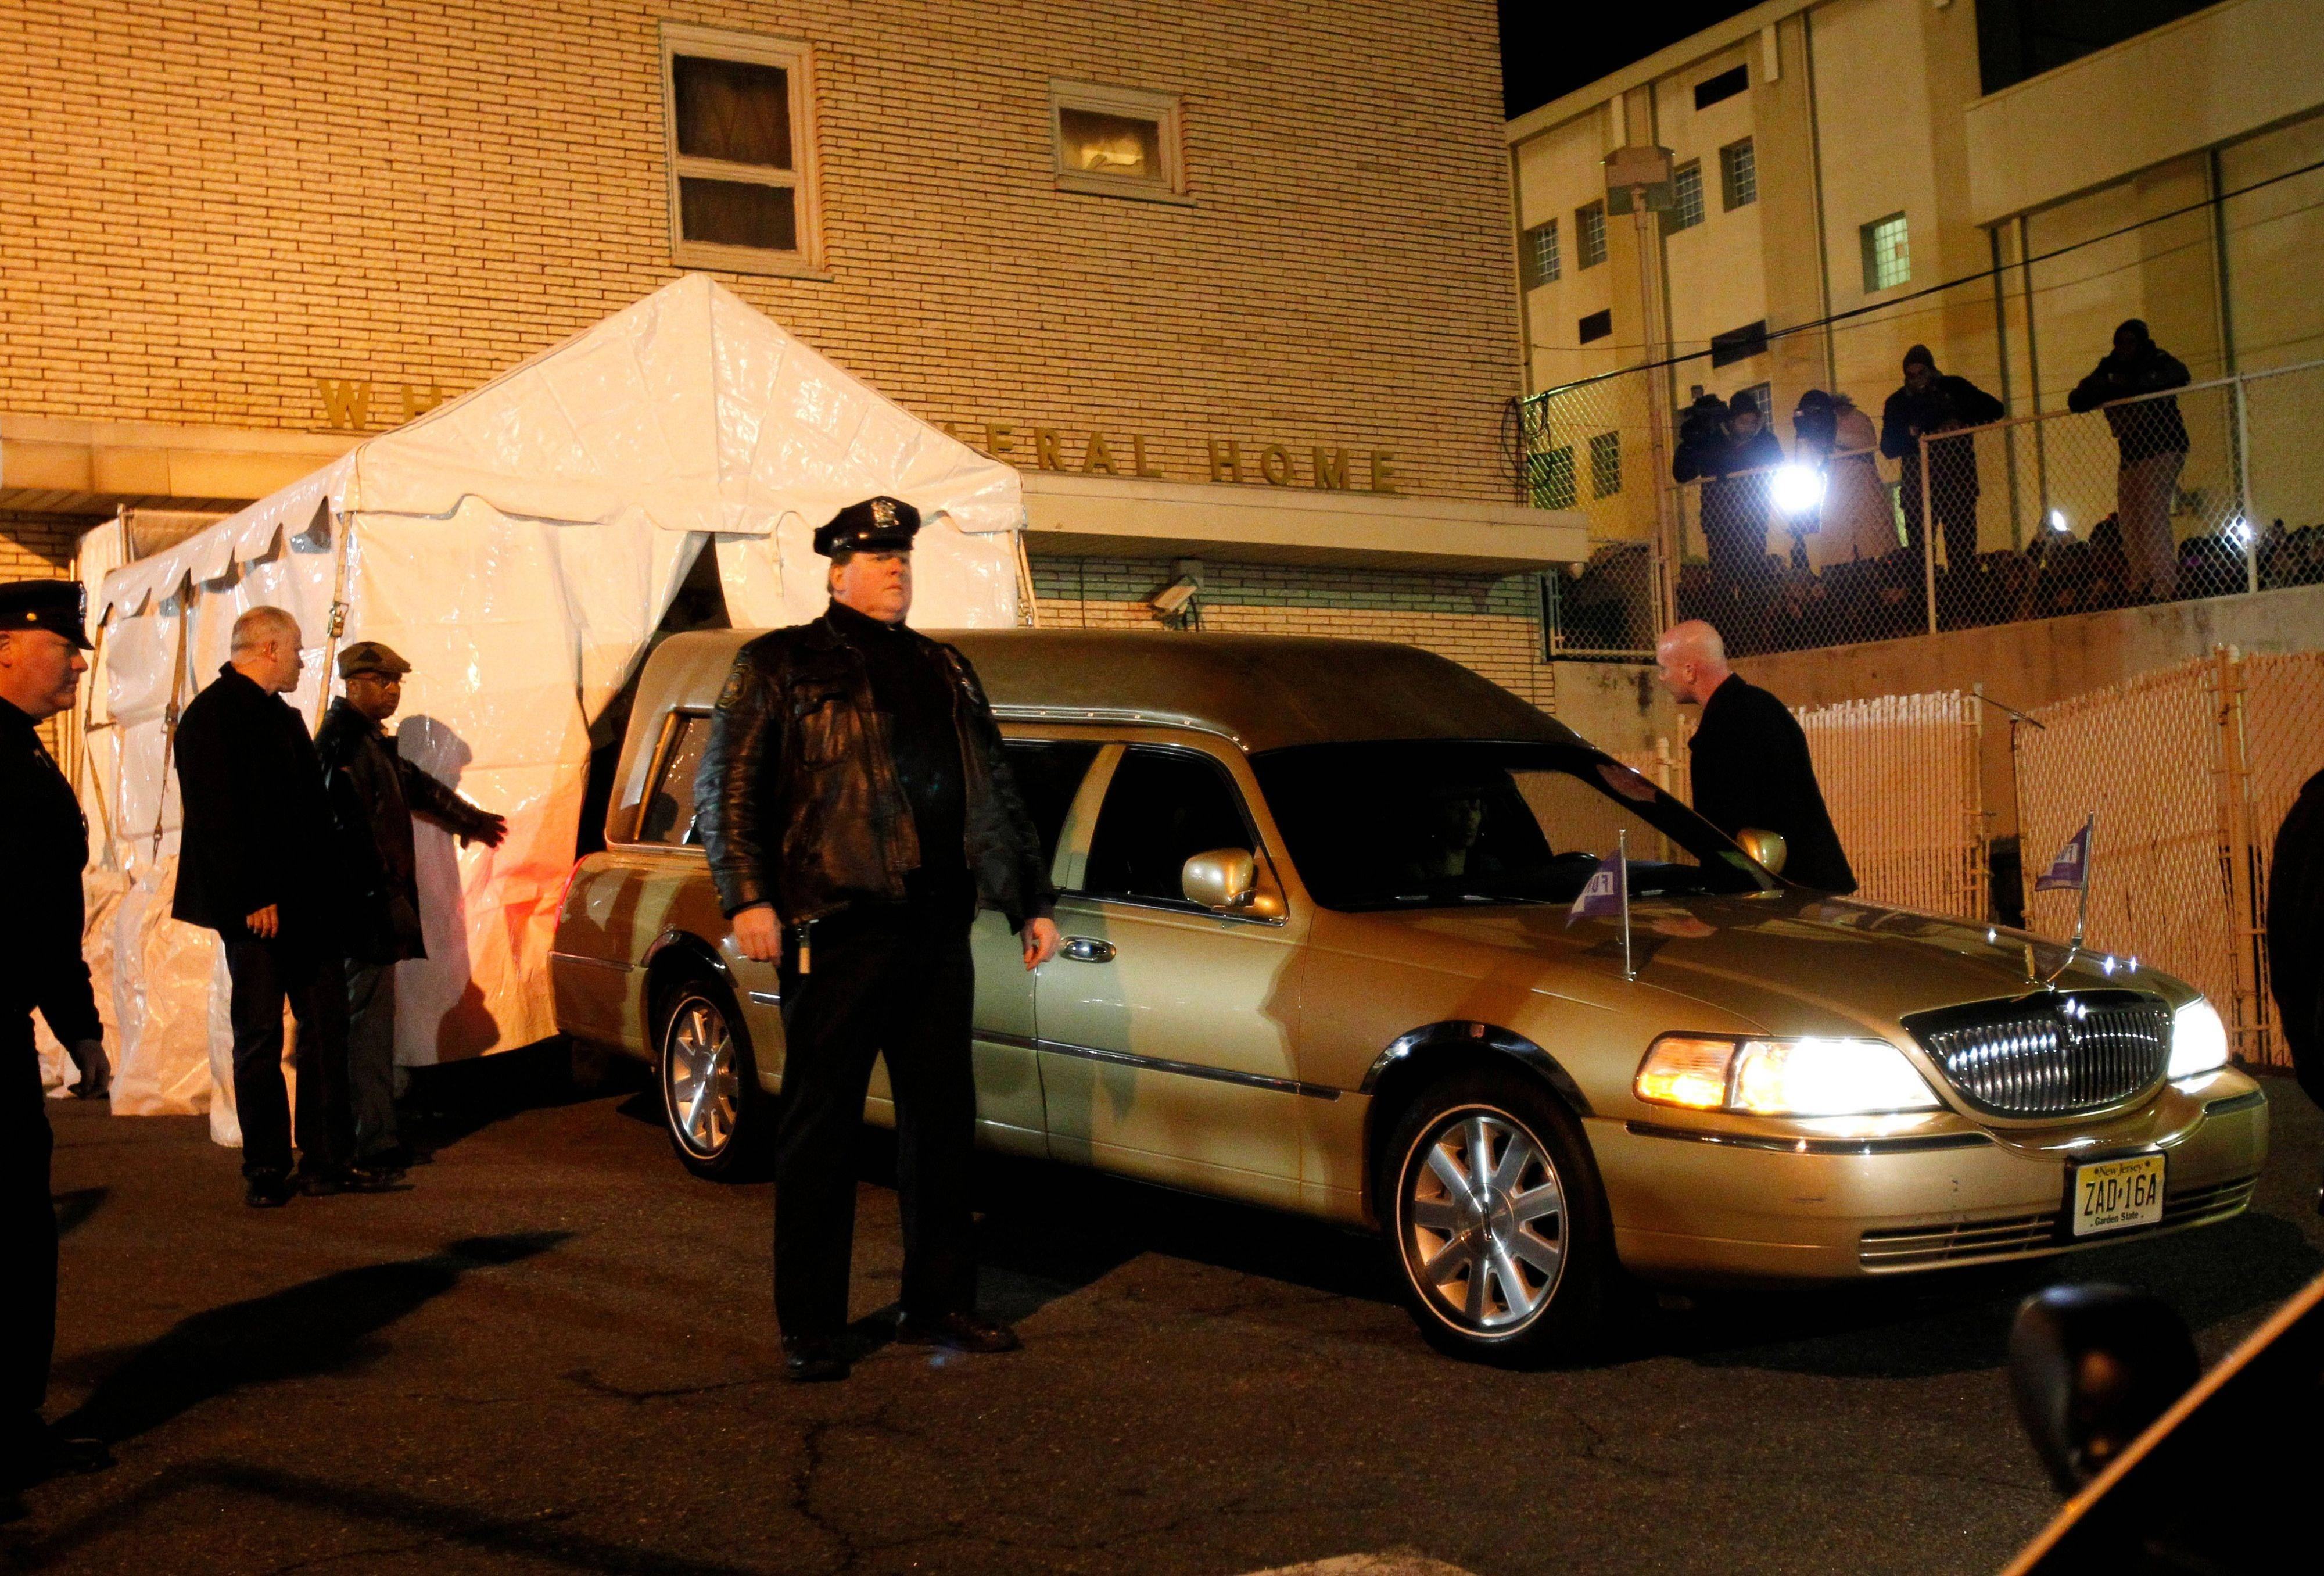 The body of Whitney Houston arrives at Whigham Funeral Home, in Newark, N.J., Monday, Feb. 13, 2012. The 48-year-old pop star was found dead in the bathtub in her hotel room at the Beverly Hilton Hotel on Saturday, hours before she was supposed to appear at a pre-Grammy gala.